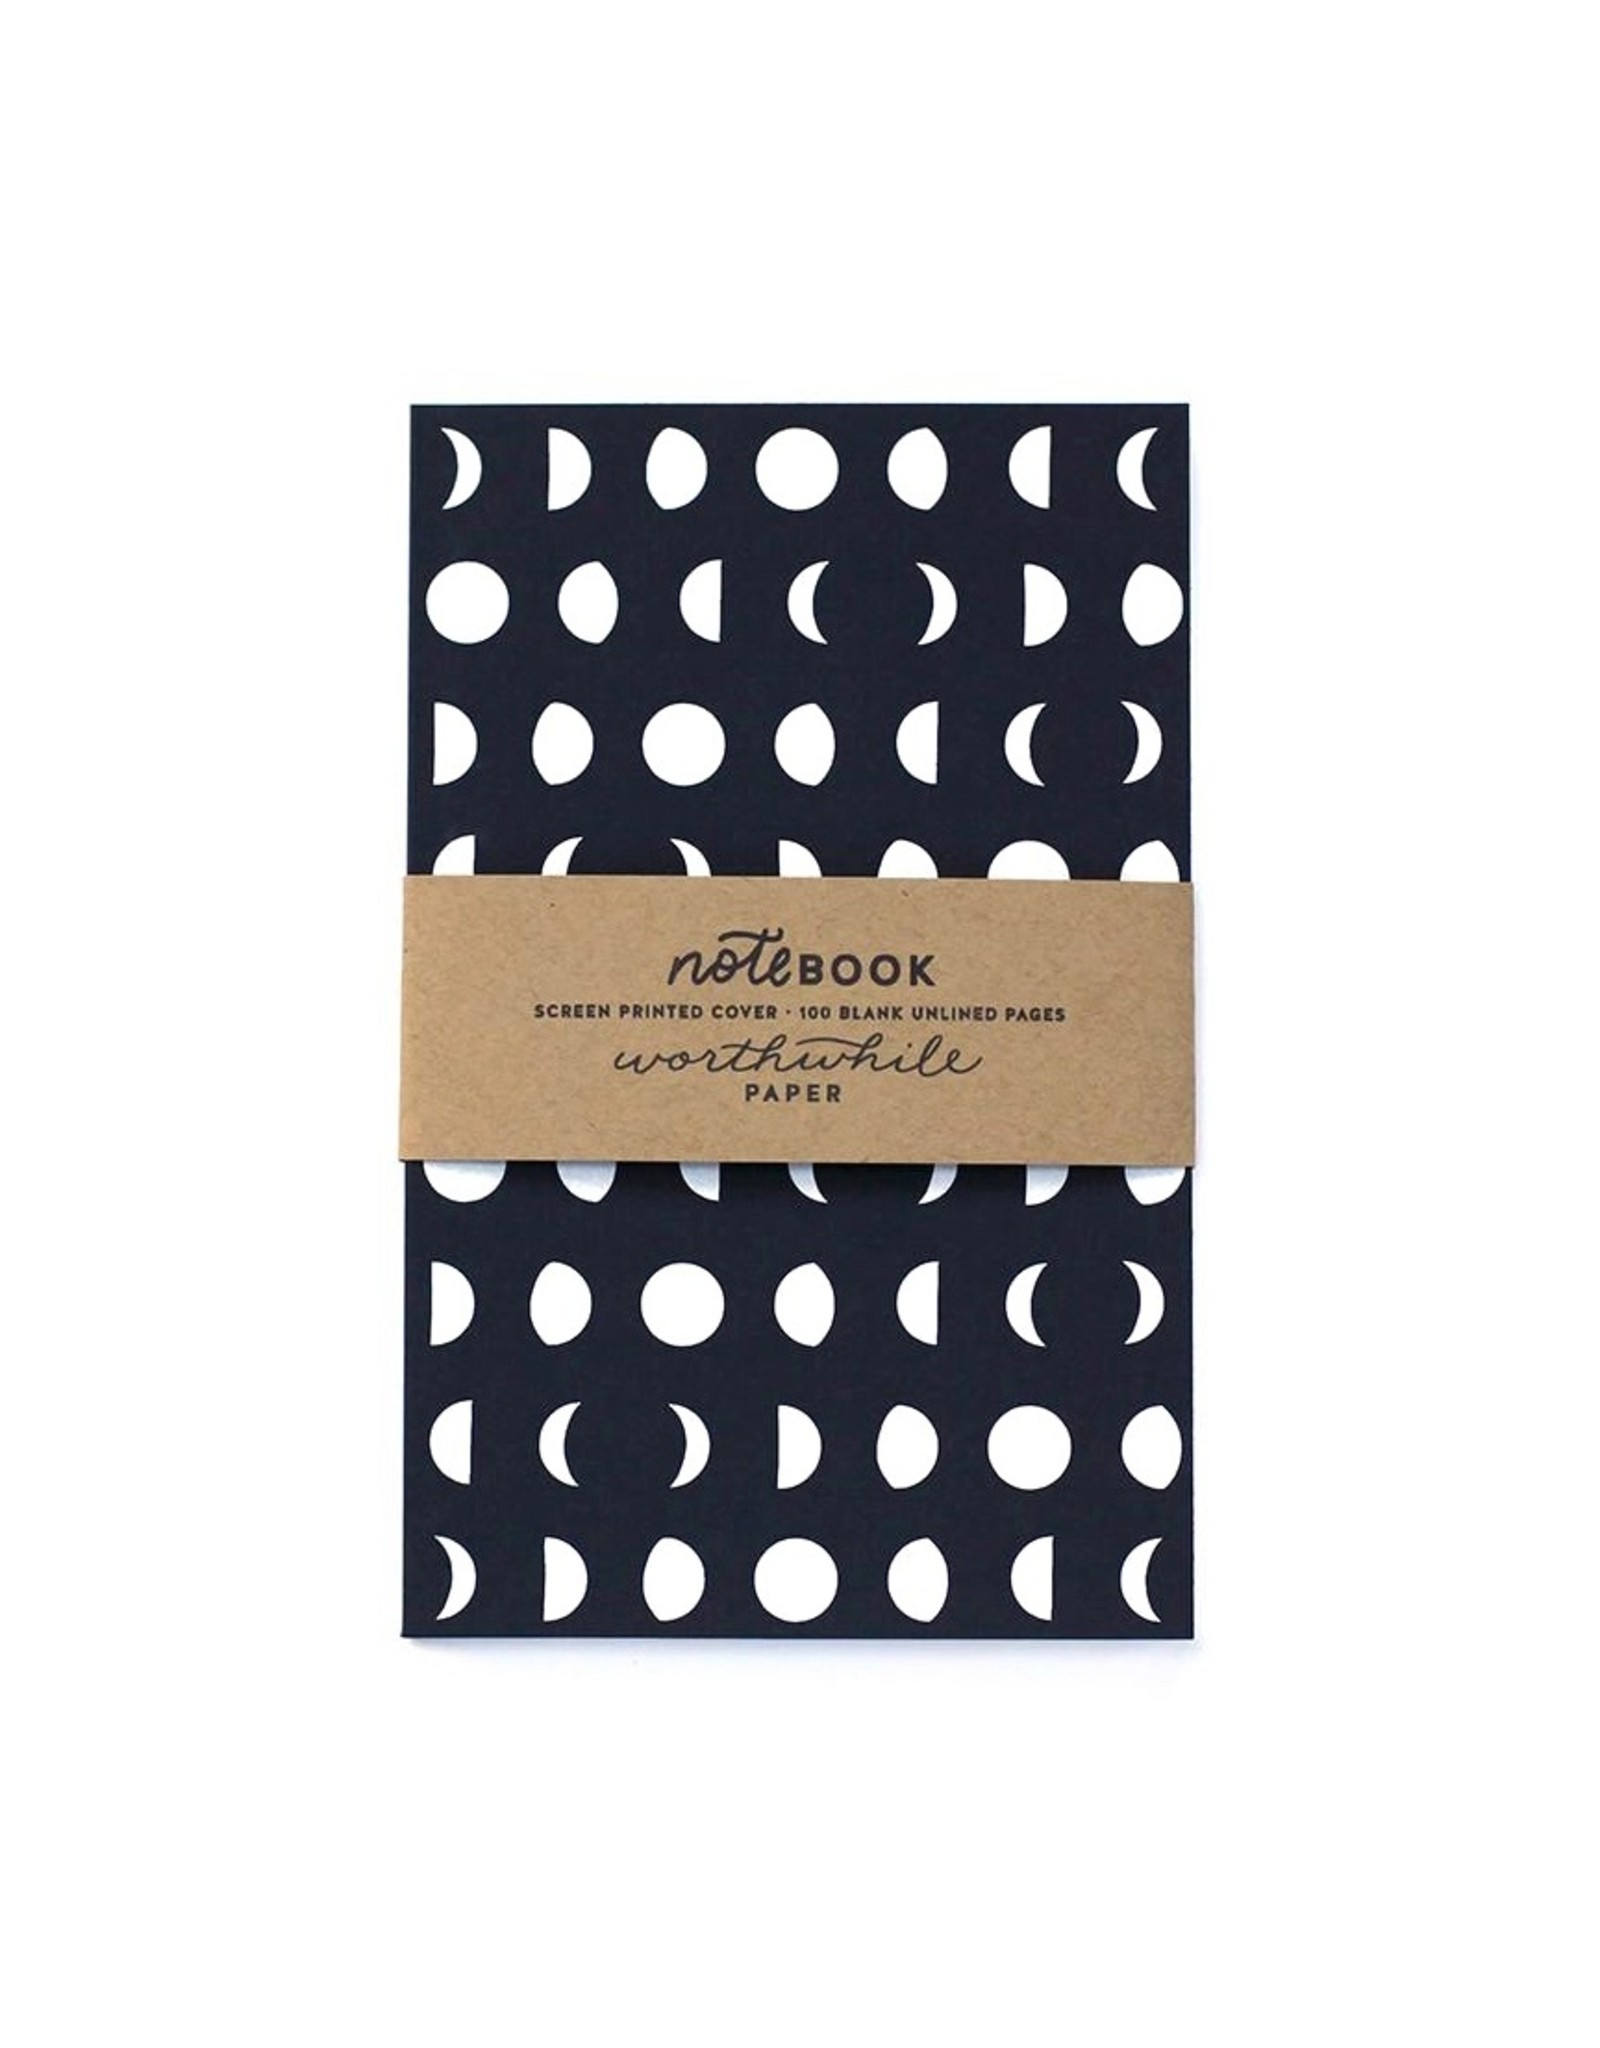 Worthwhile Paper Moon Notebook